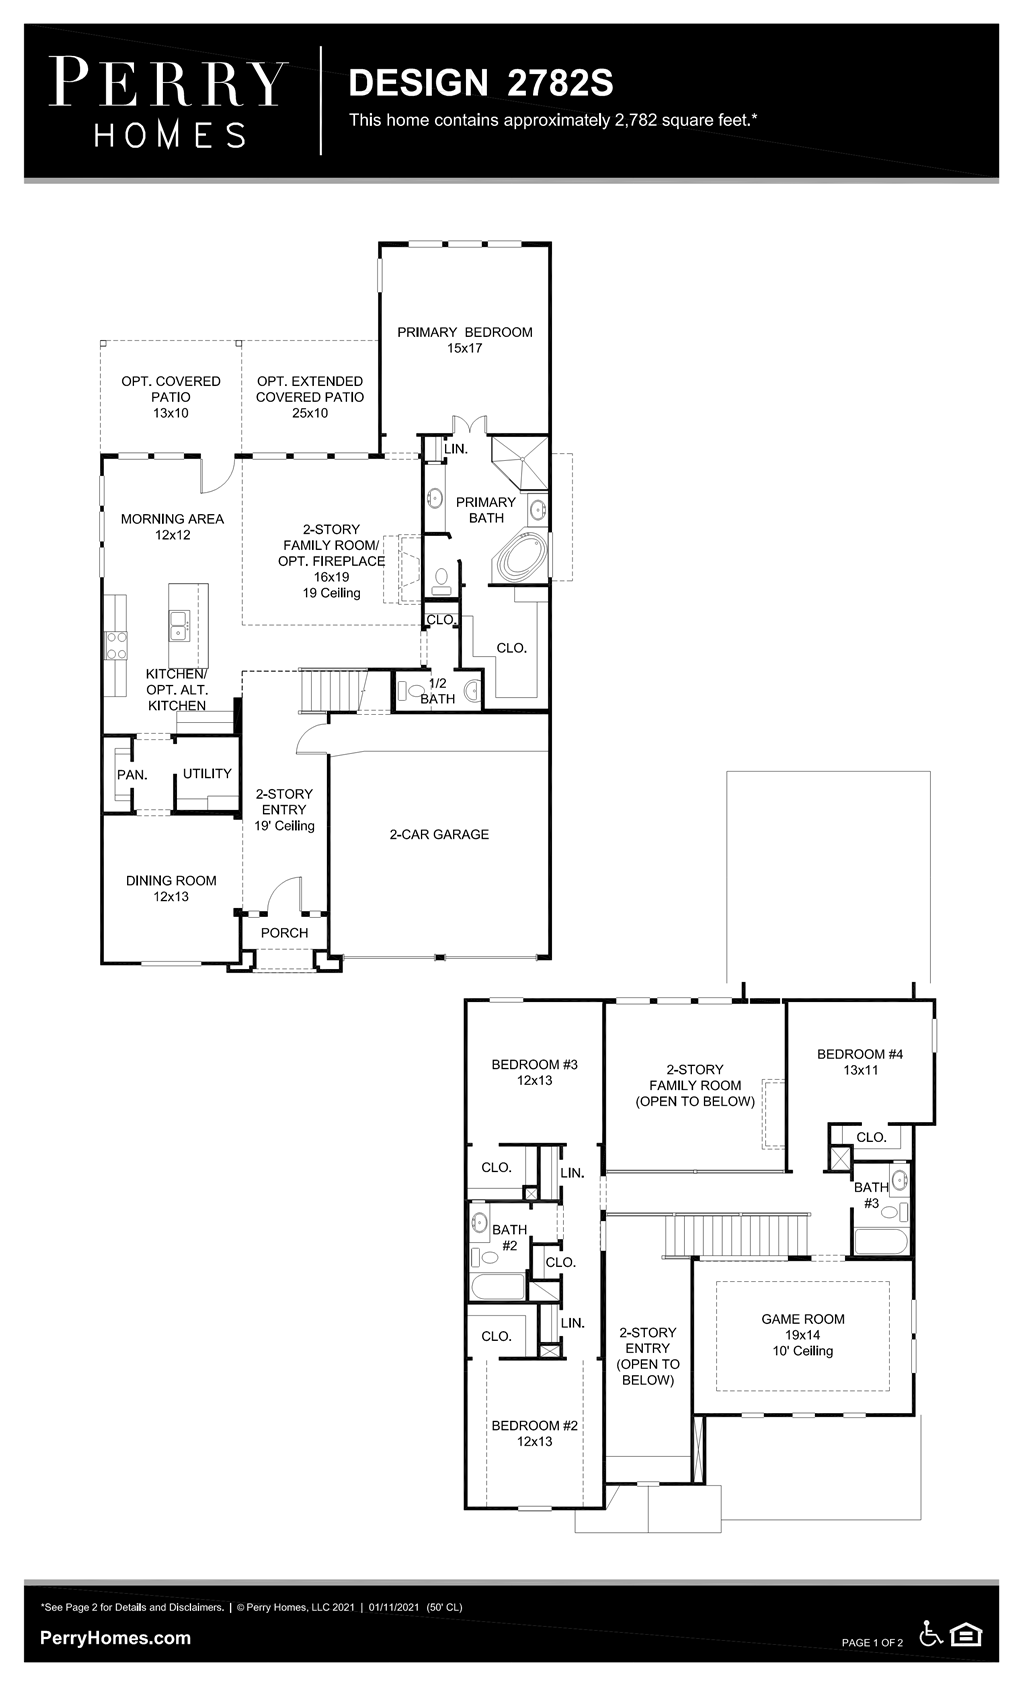 Floor Plan for 2782S